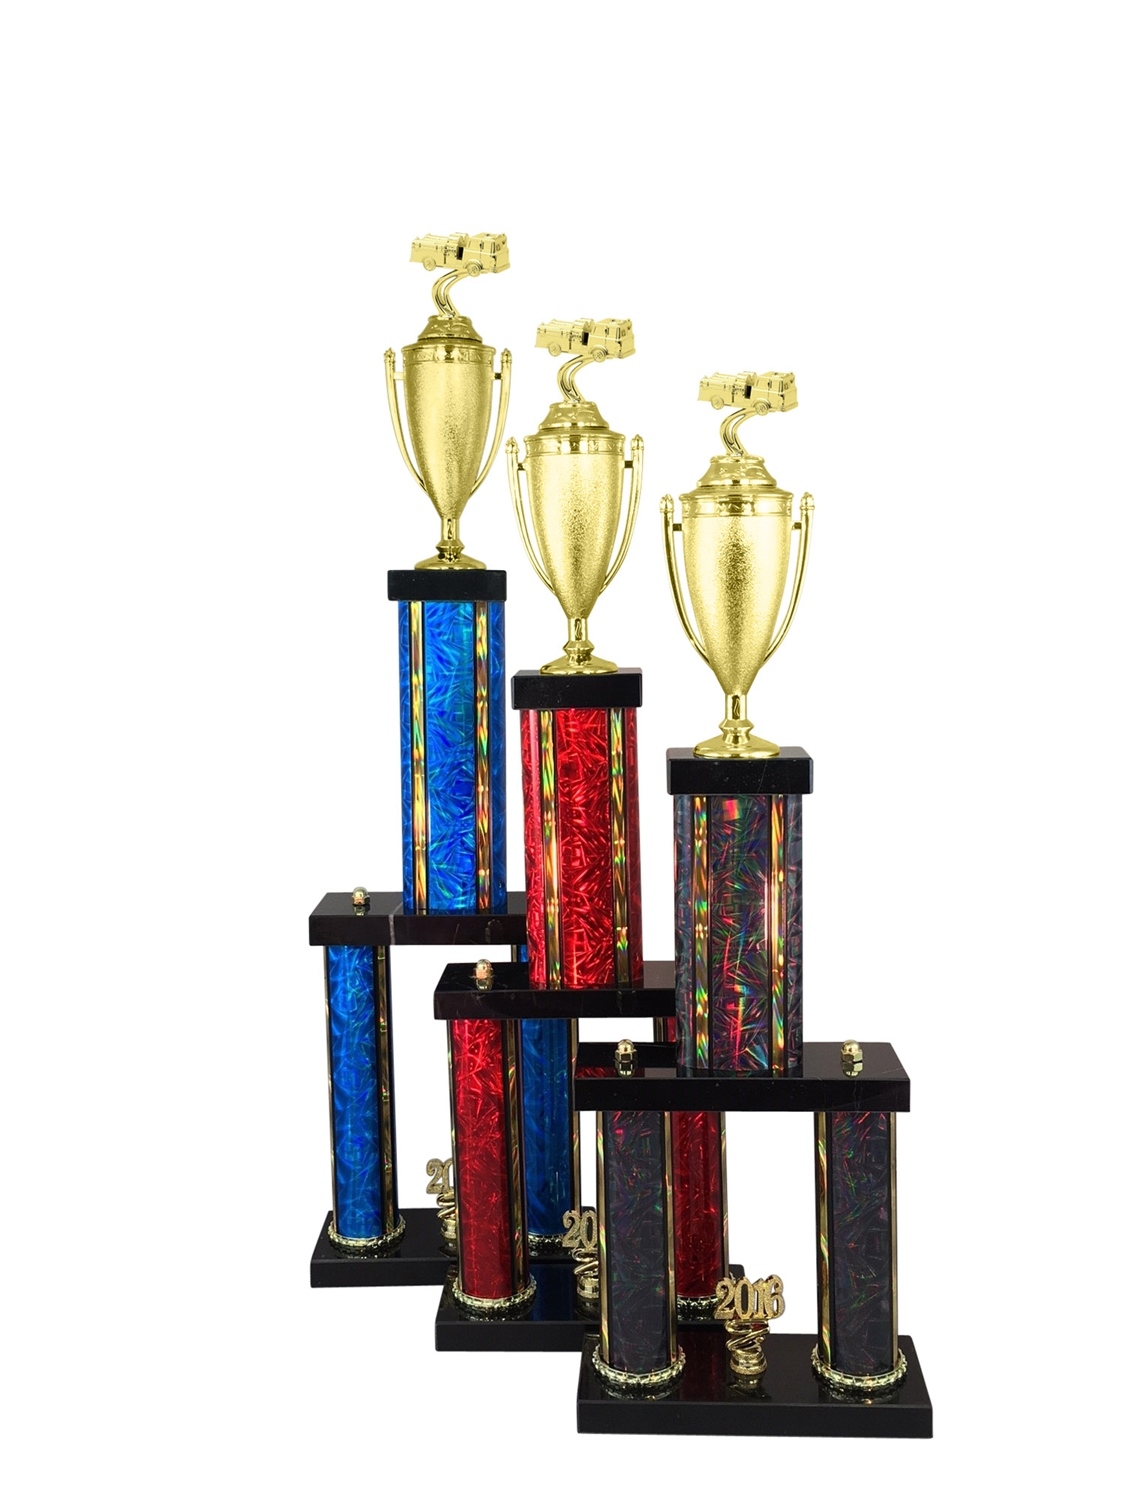 Firetruck Trophy Available in 11 Color & 6 Size Options